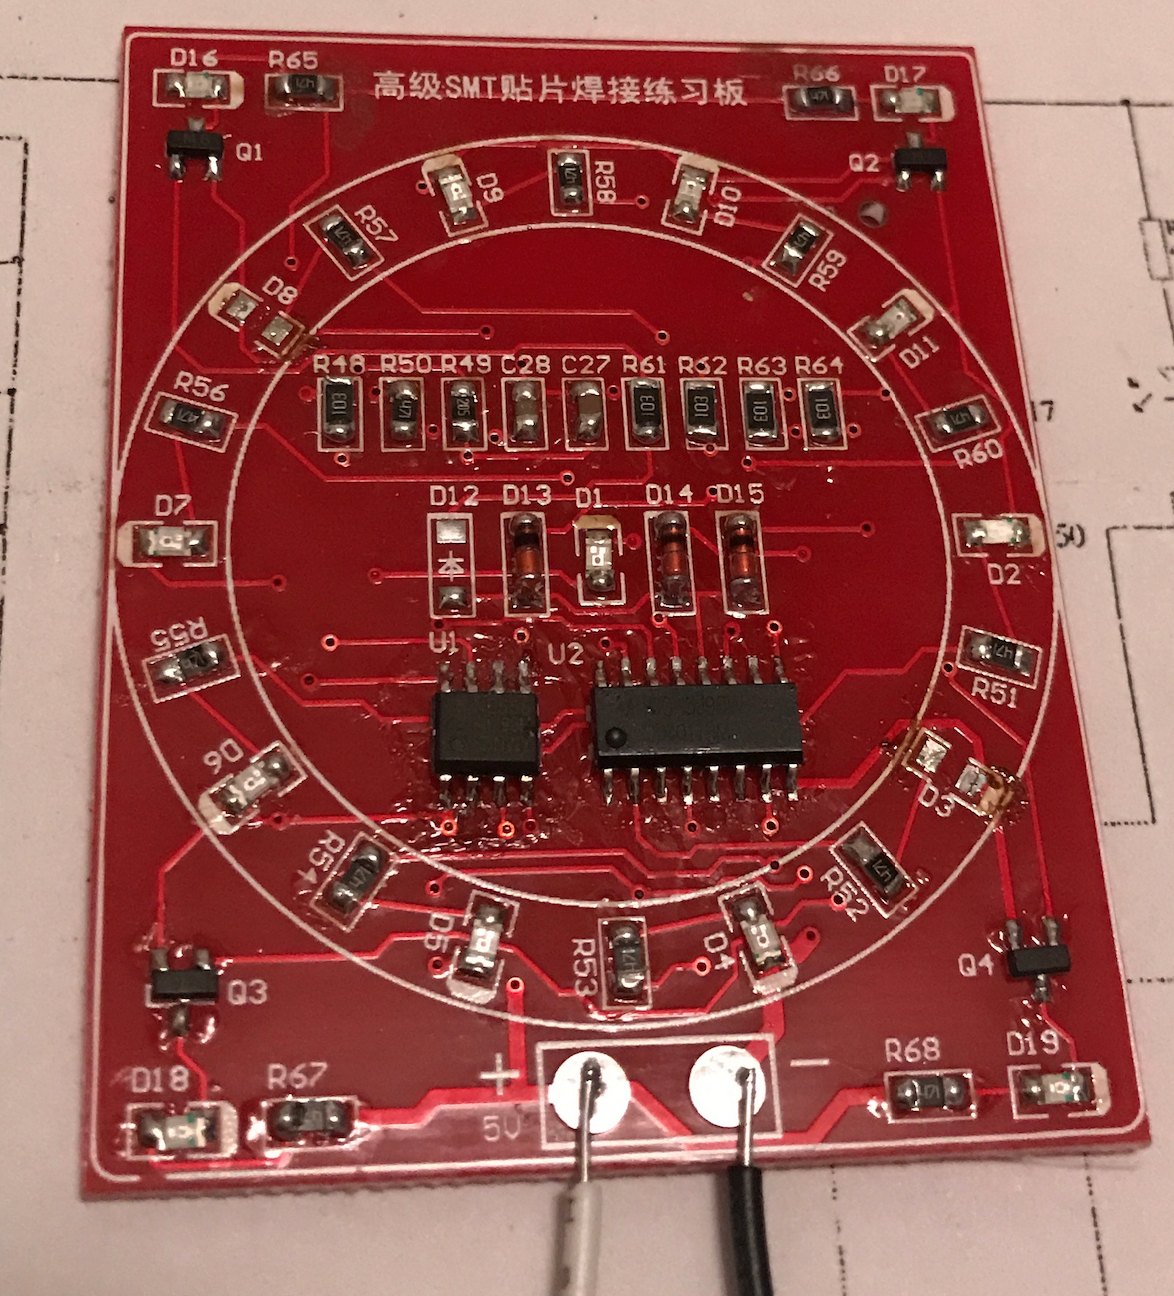 Surface Mount Electronics For Hobbyists Easier Than You Think Pcb Assembly Circuit Board Printing Machinepcb Manufacturing I Have Some 0603 Imperial Comparison Which Are Smaller These 0805s Perhaps They Sent 1206 Chip Resistors 10 K By Mistake